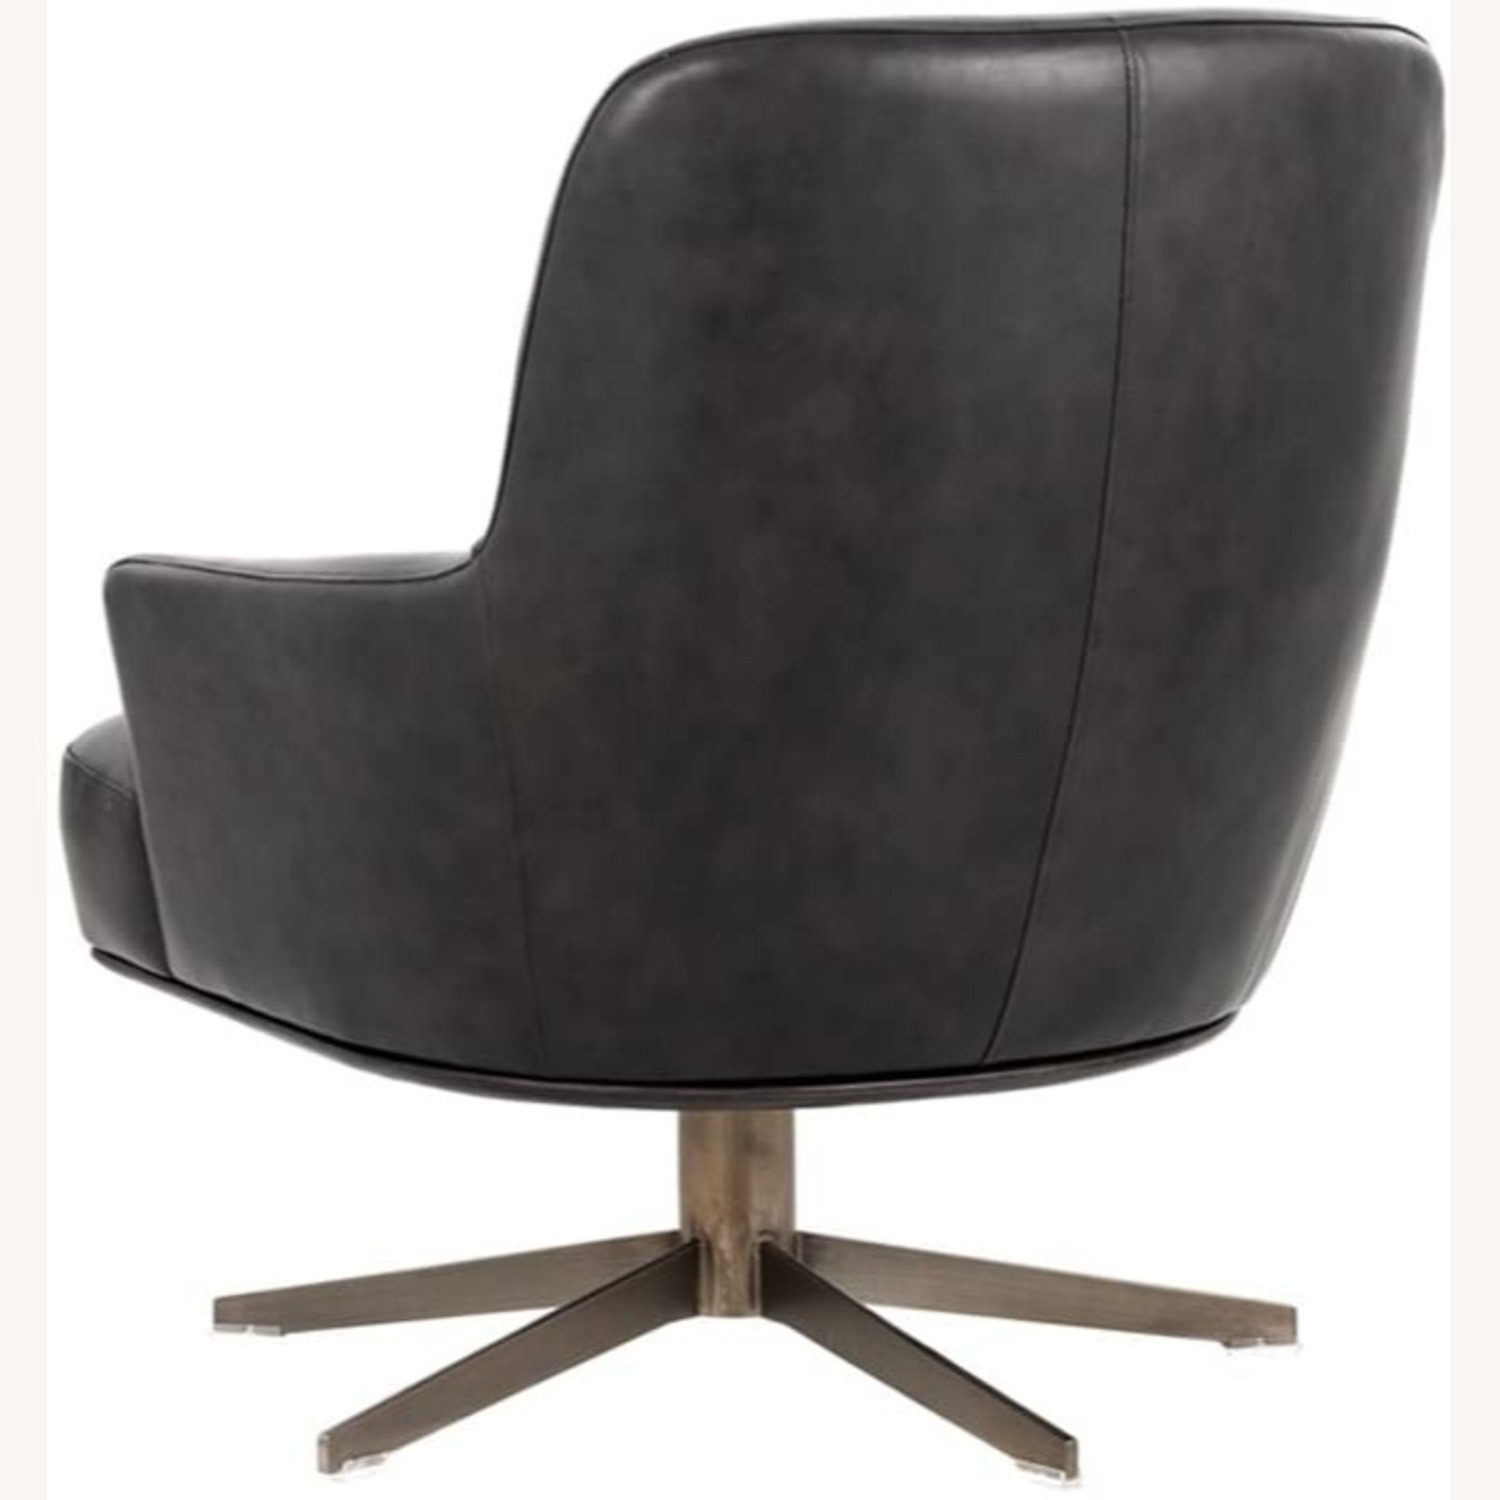 Modern Swivel Chair - Charcoal Leather - image-2